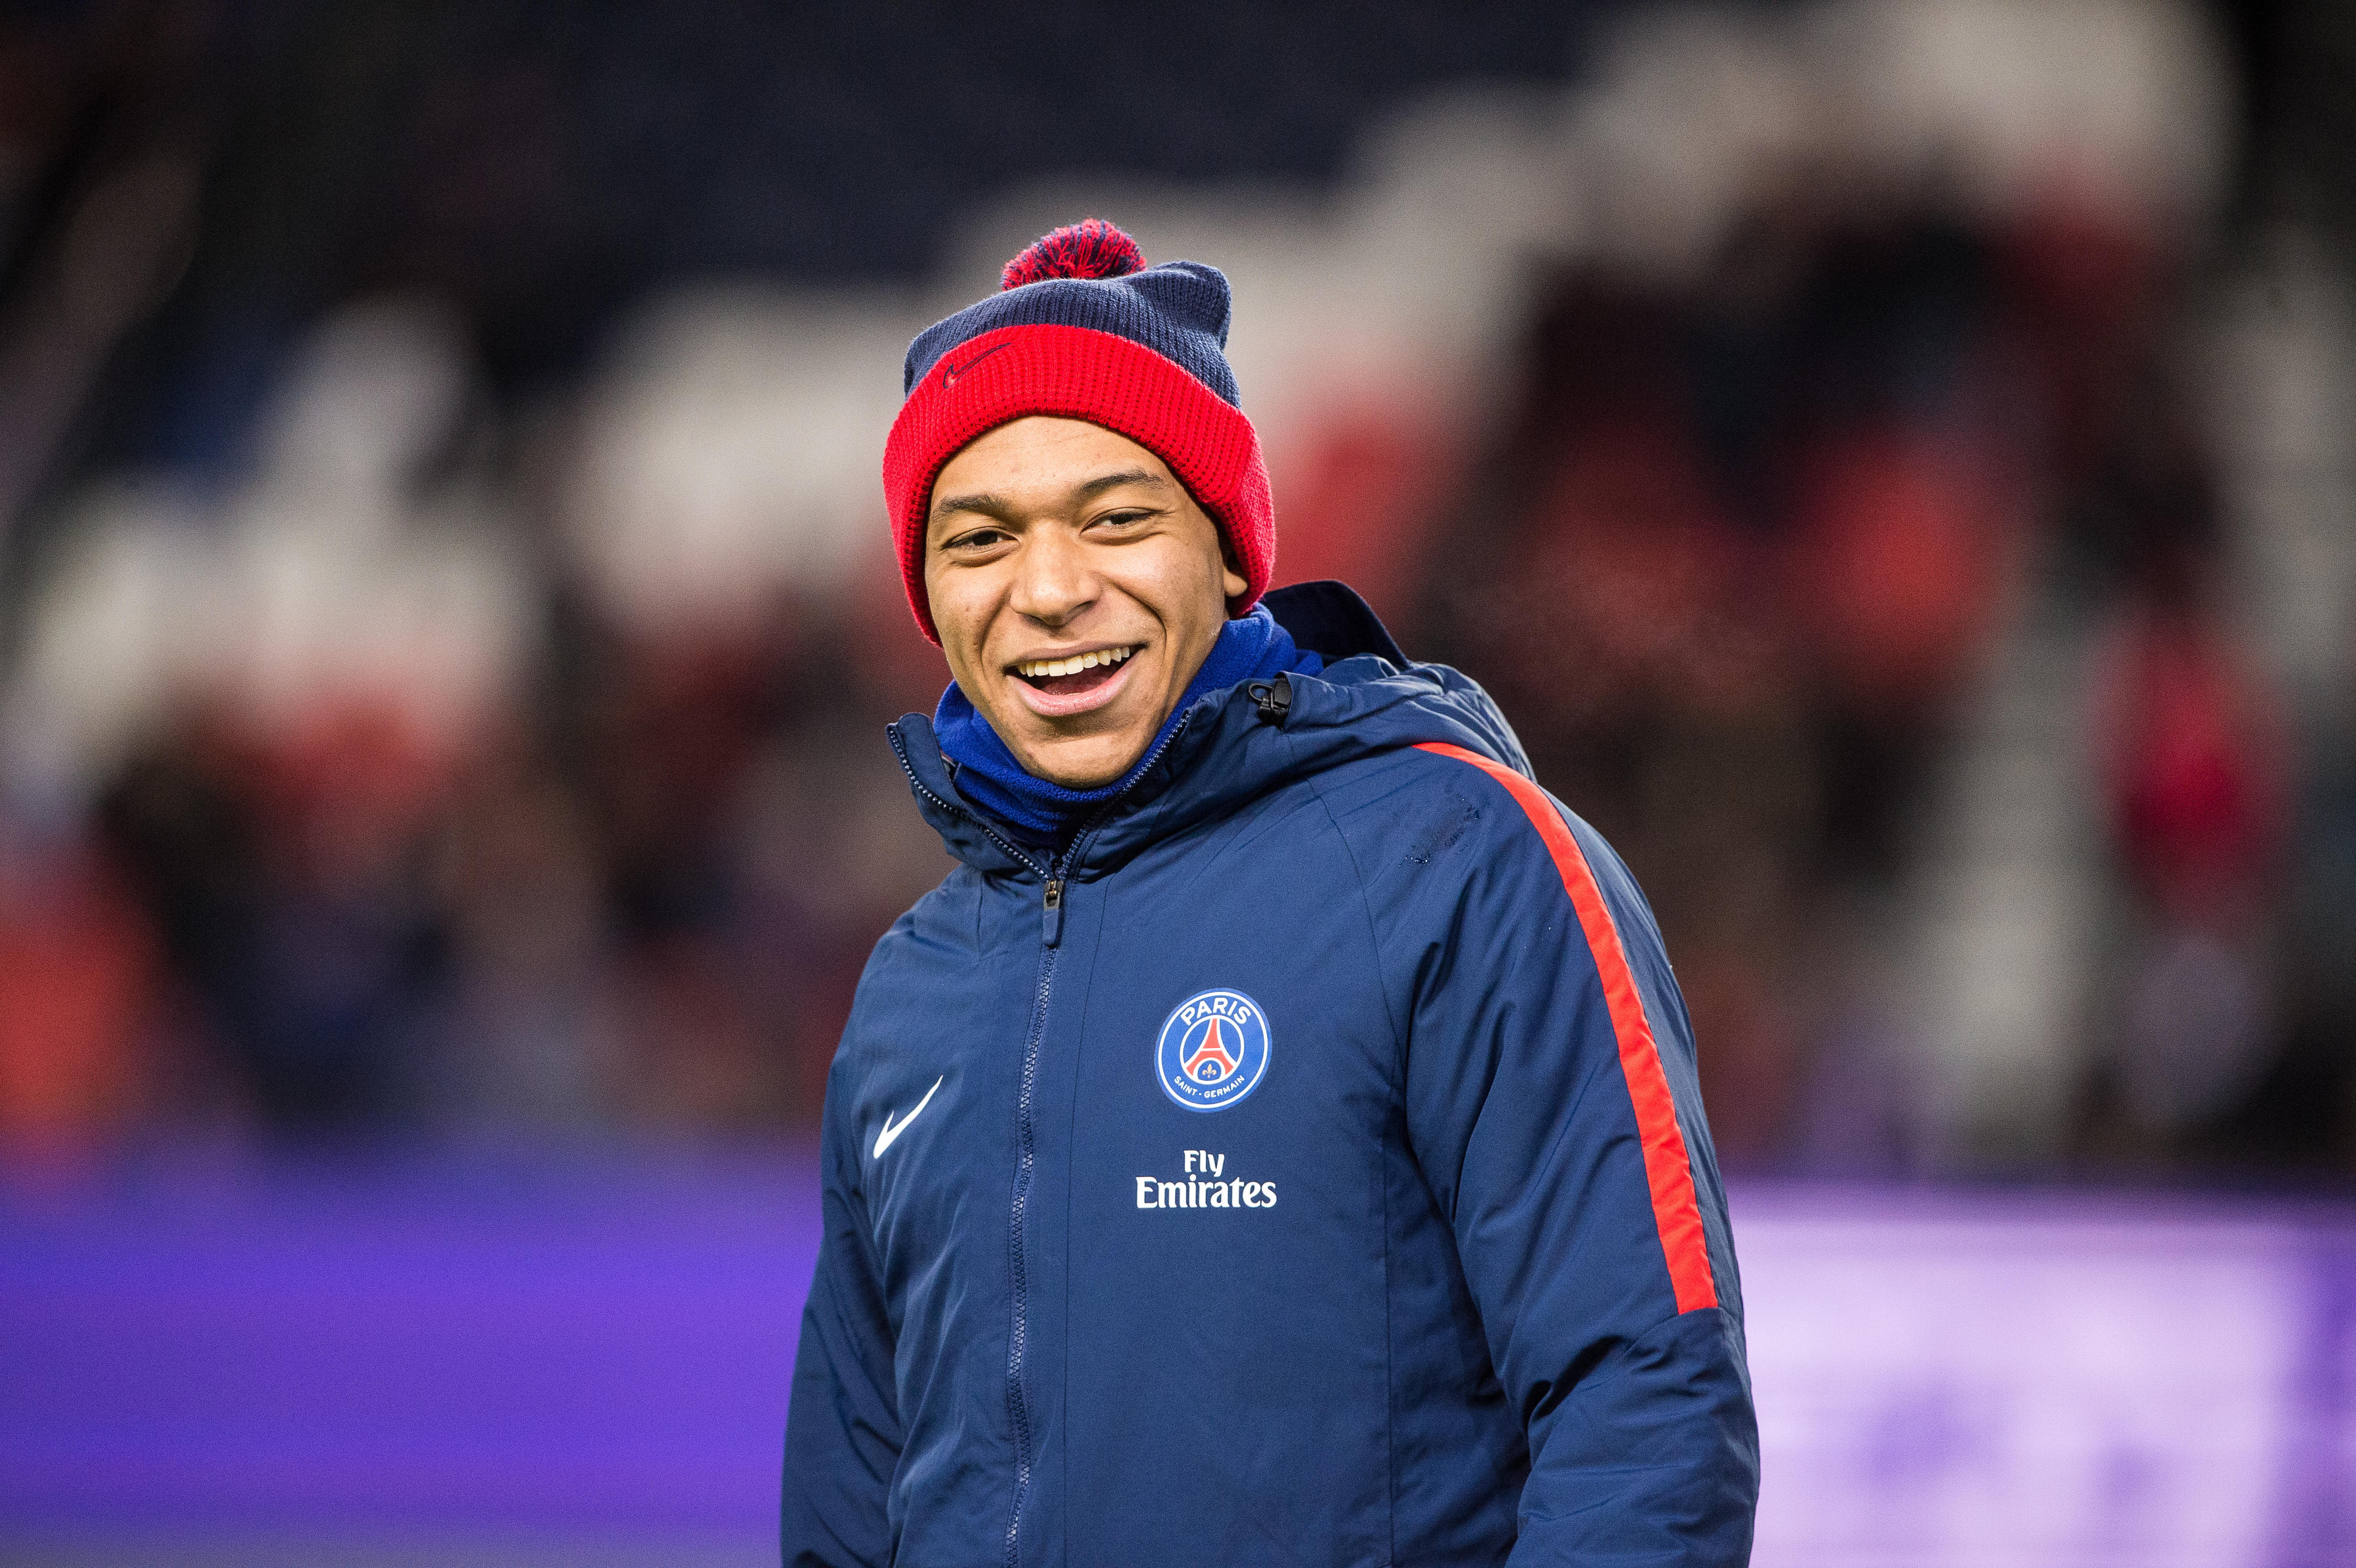 Mbappe to join PSG after relegation clause triggered